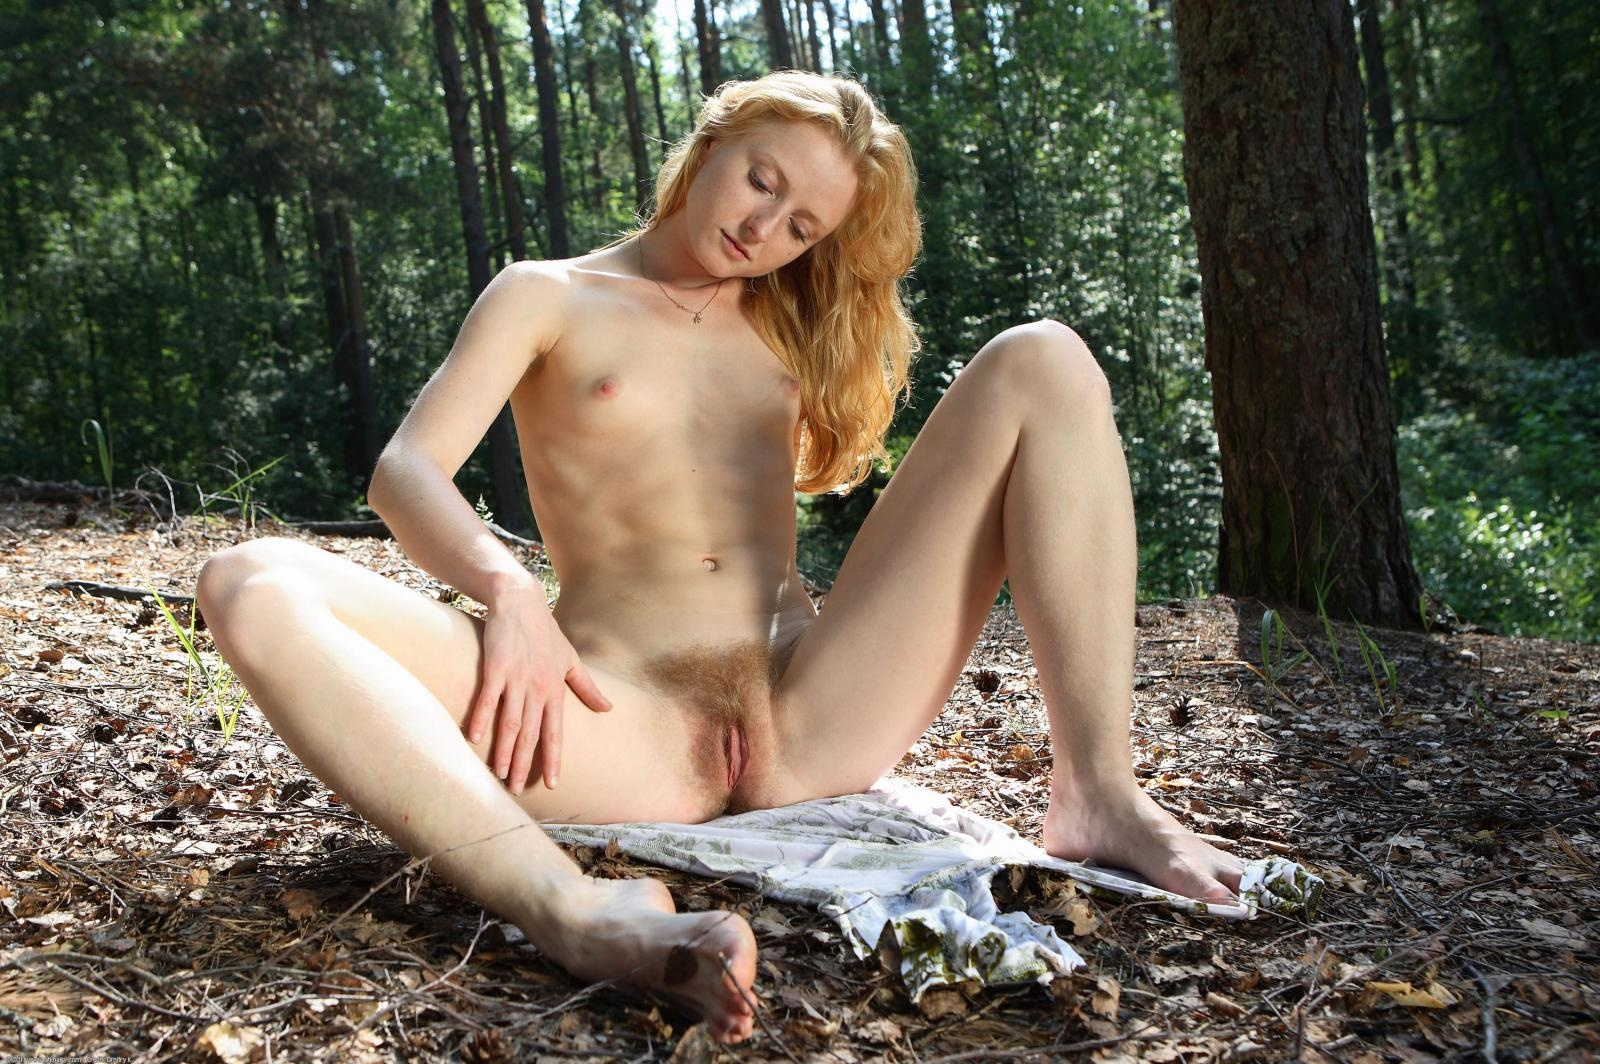 hairy outdoors Atk pussy